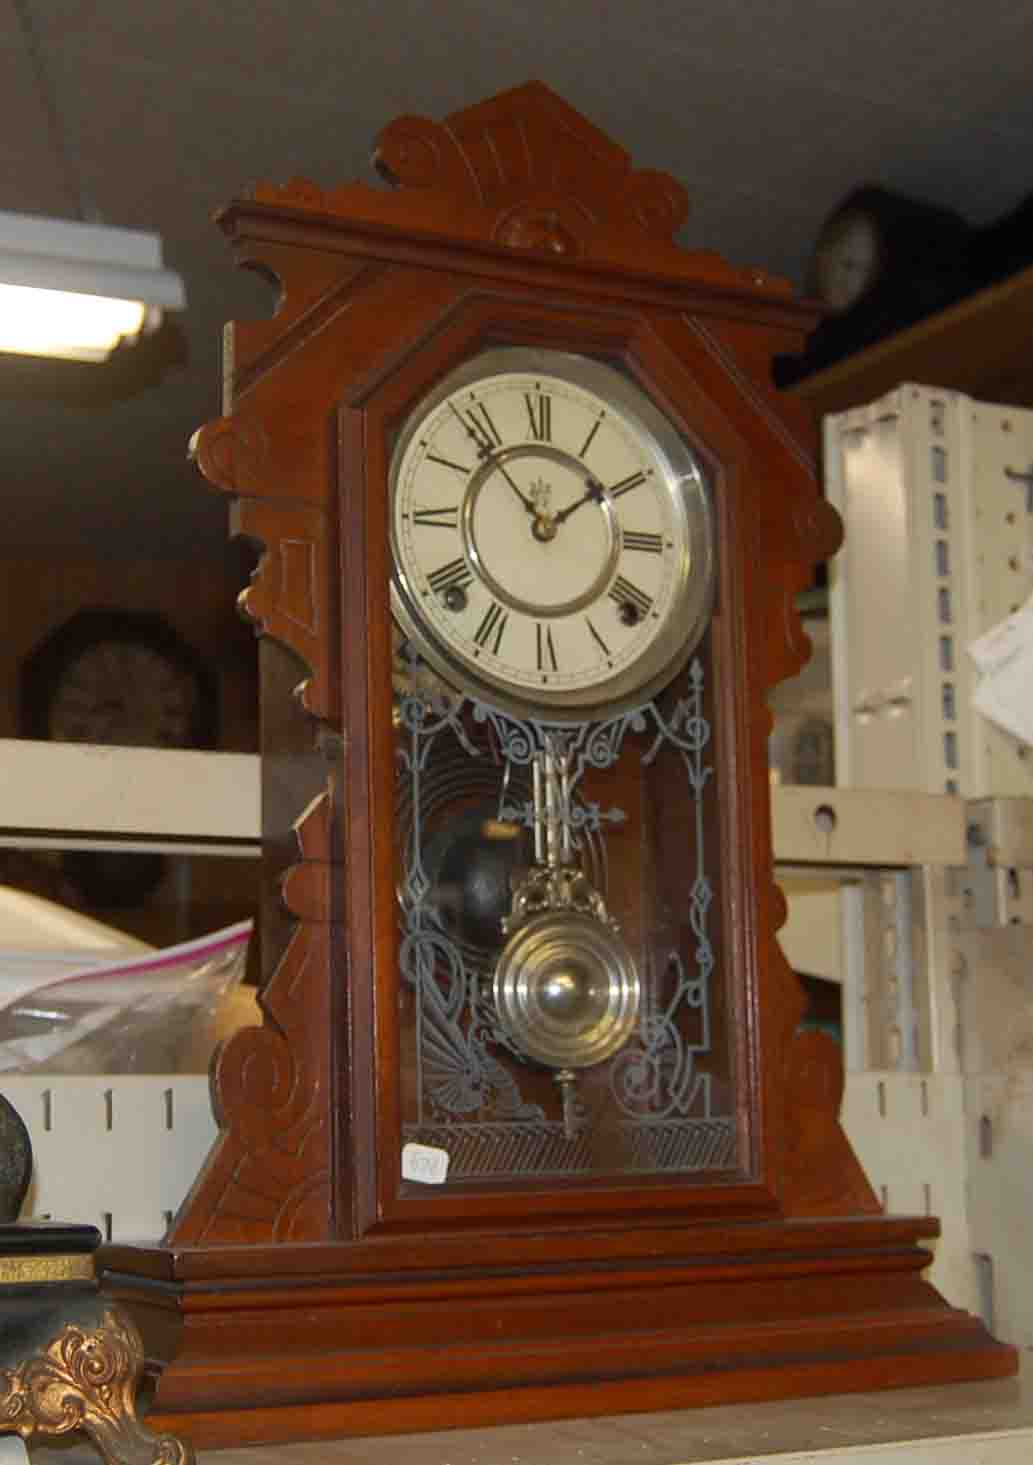 Antique Kitchen Mantel Clocks Mackey S Clock Repair Parkersburg Wv